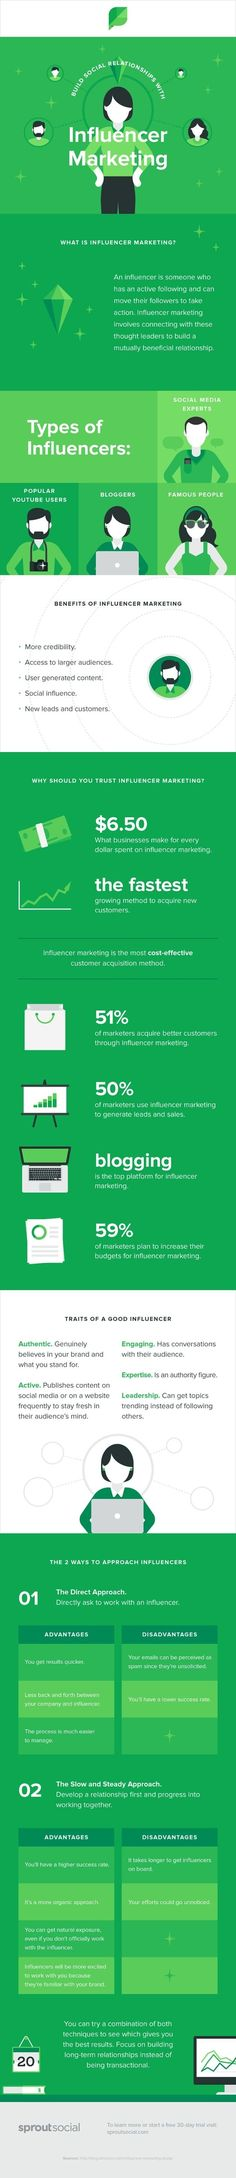 Marketing Strategy - Build Social Relationships With Influencer Marketing [Infographic] : MarketingProfs Article